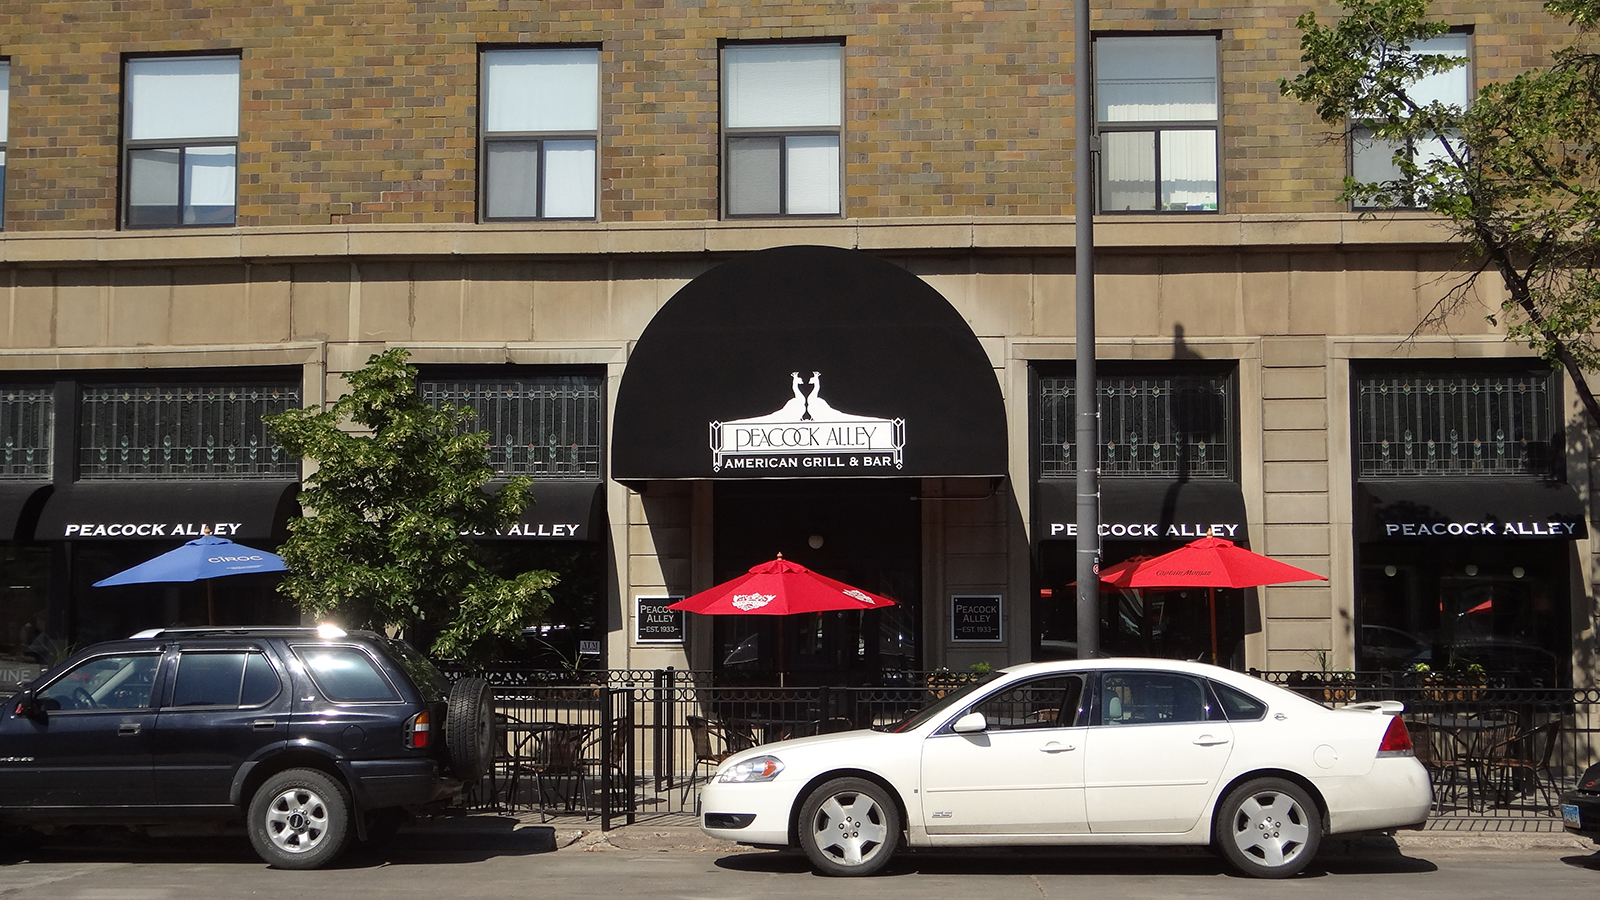 Peacock Alley - Patterson Hotel in Downtown Bismarck July 2014